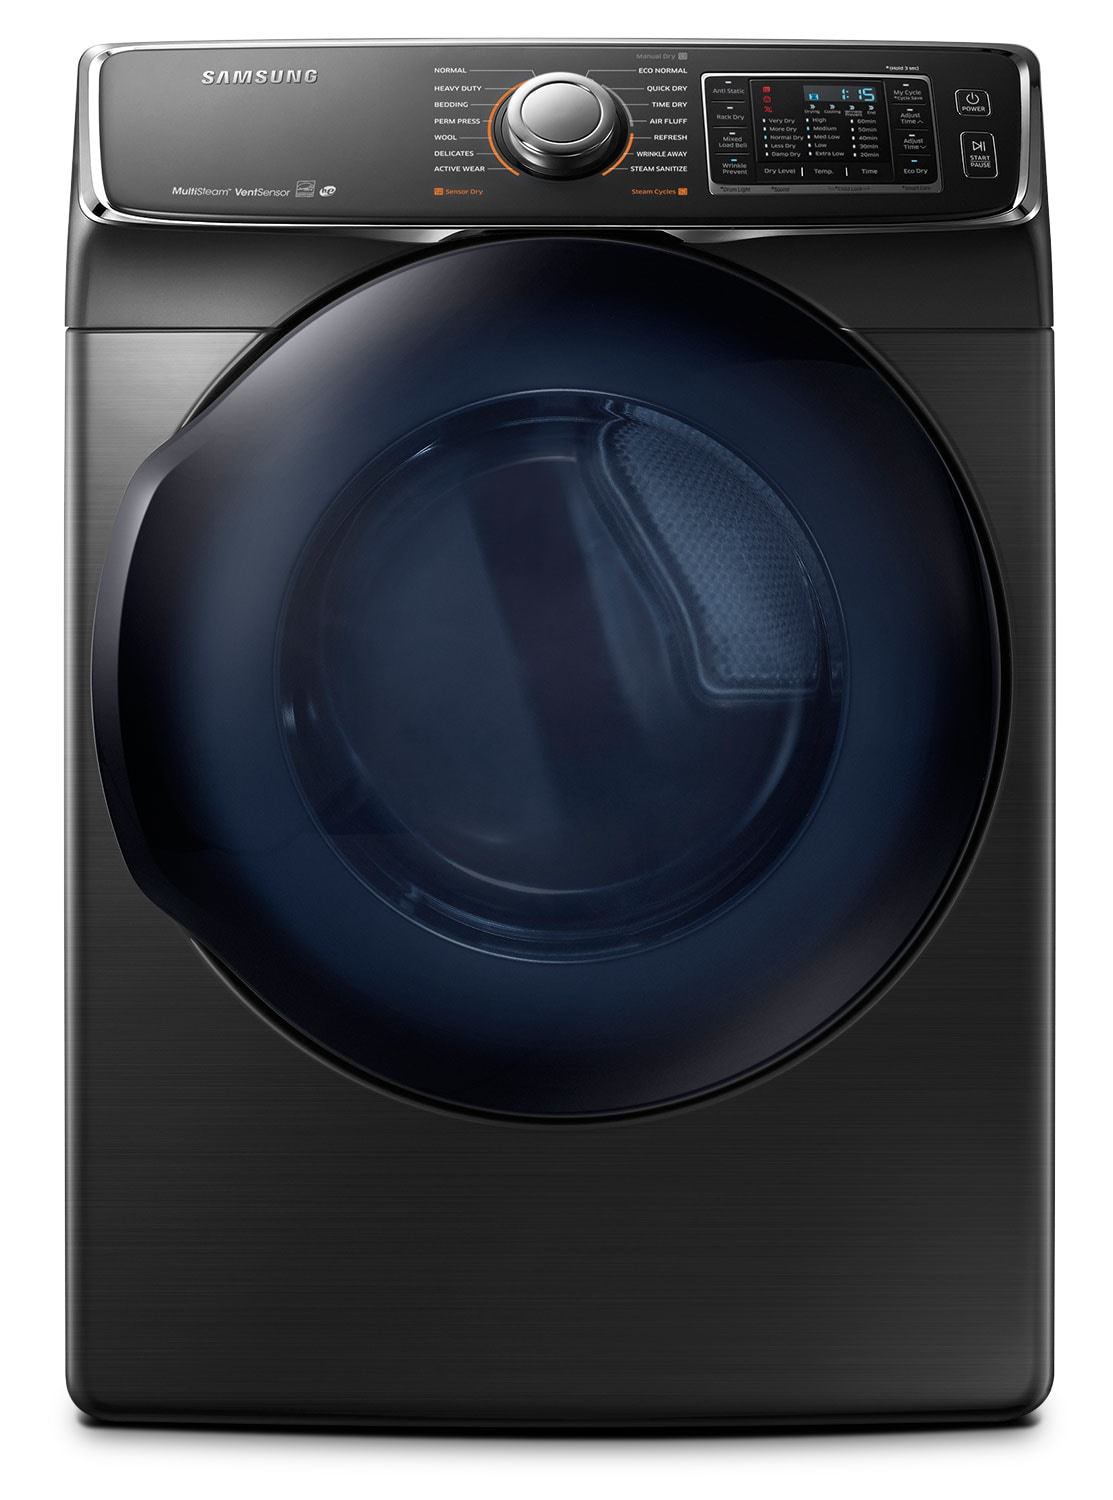 Samsung Black Stainless Steel Electric Dryer (7.5 Cu. Ft.) - DV50K7500EV/AC